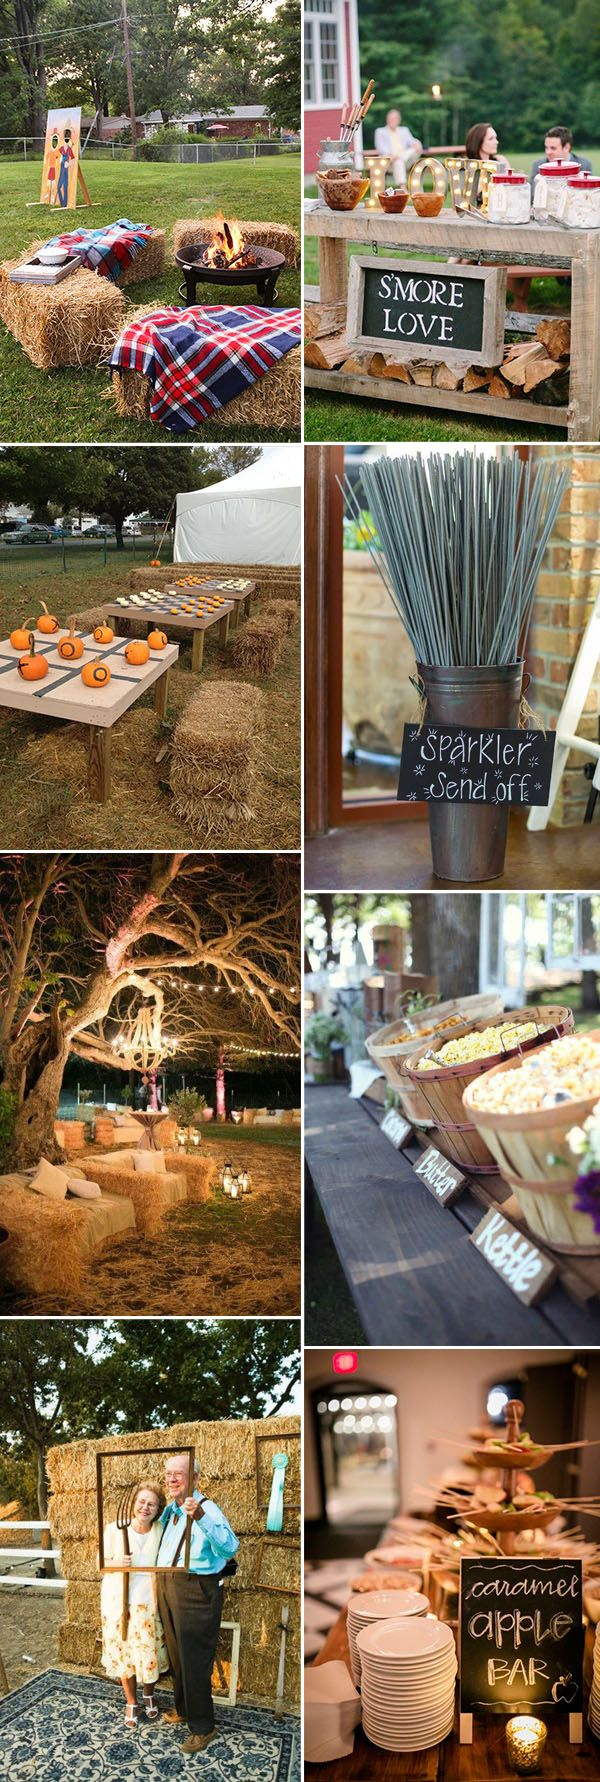 fun and interactive intimate fall wedding ideas